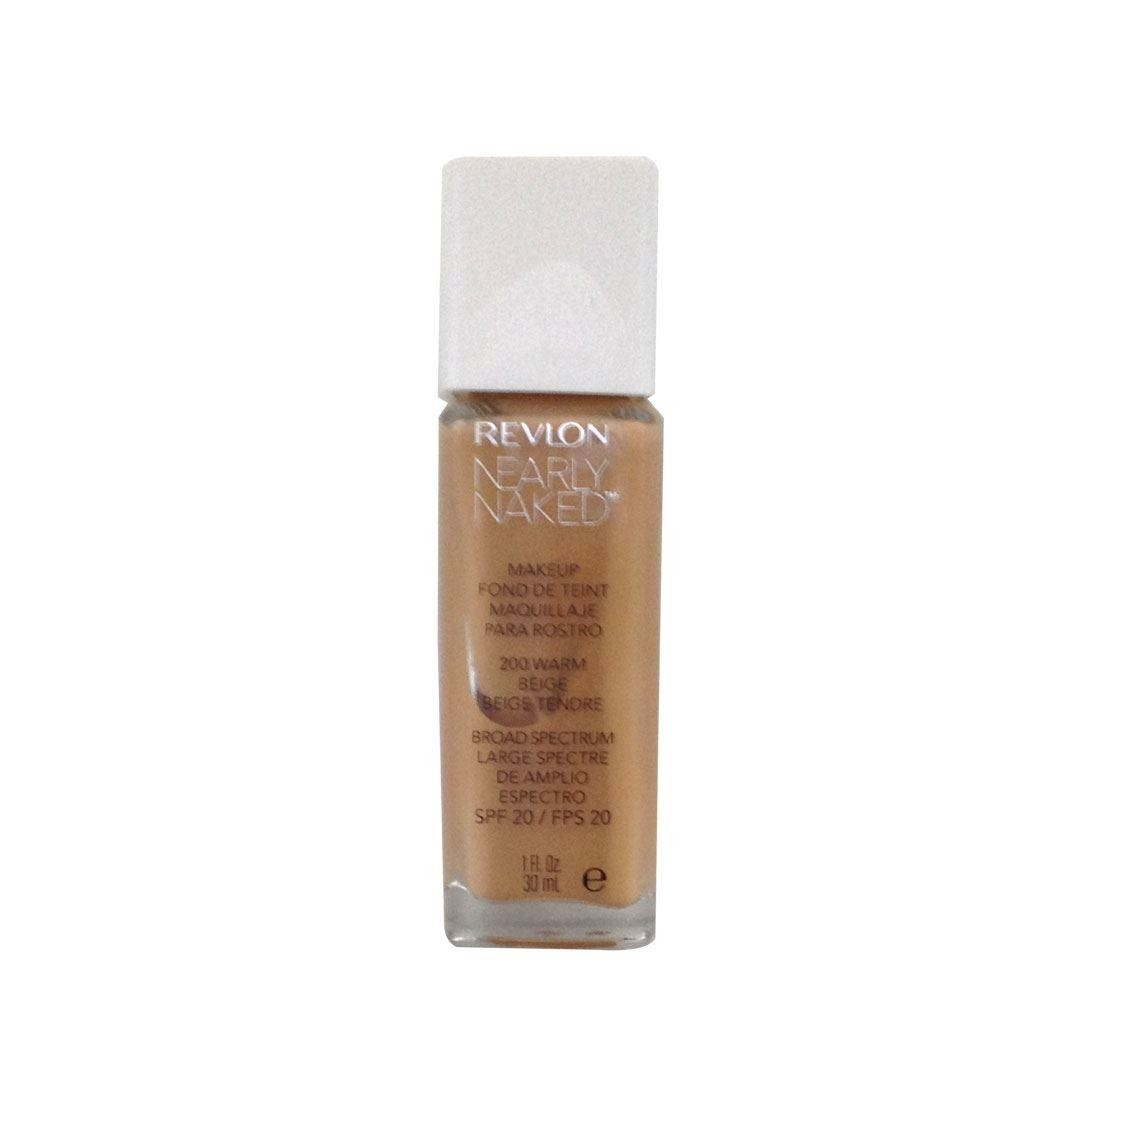 Revlon Nearly Naked Foundation SPF20 - 200 Warm Beige 30ml